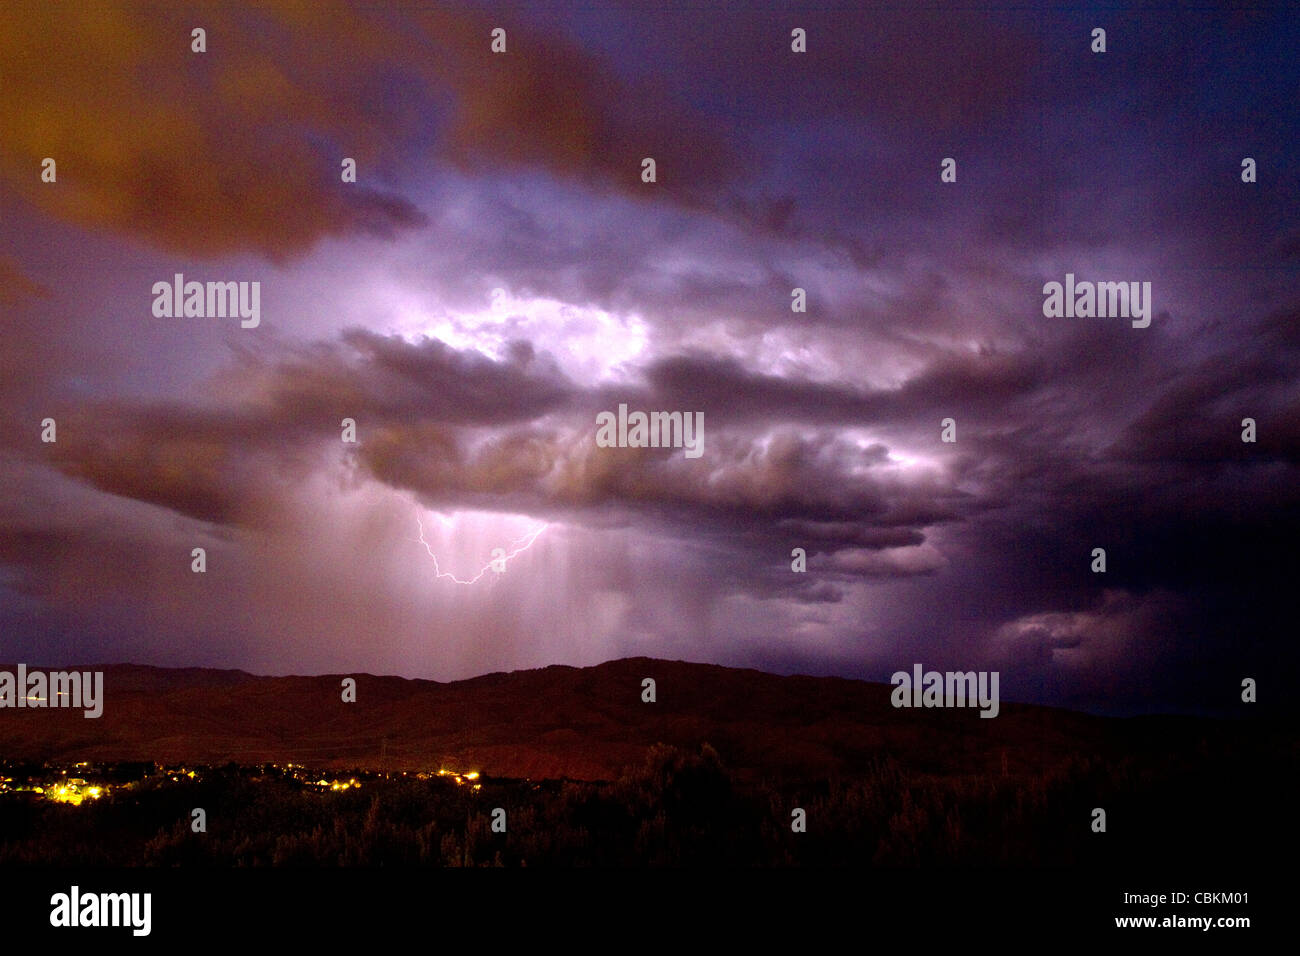 Lightning strikes during a thunderstorm on the first day of summer in Boise, Idaho, USA. - Stock Image